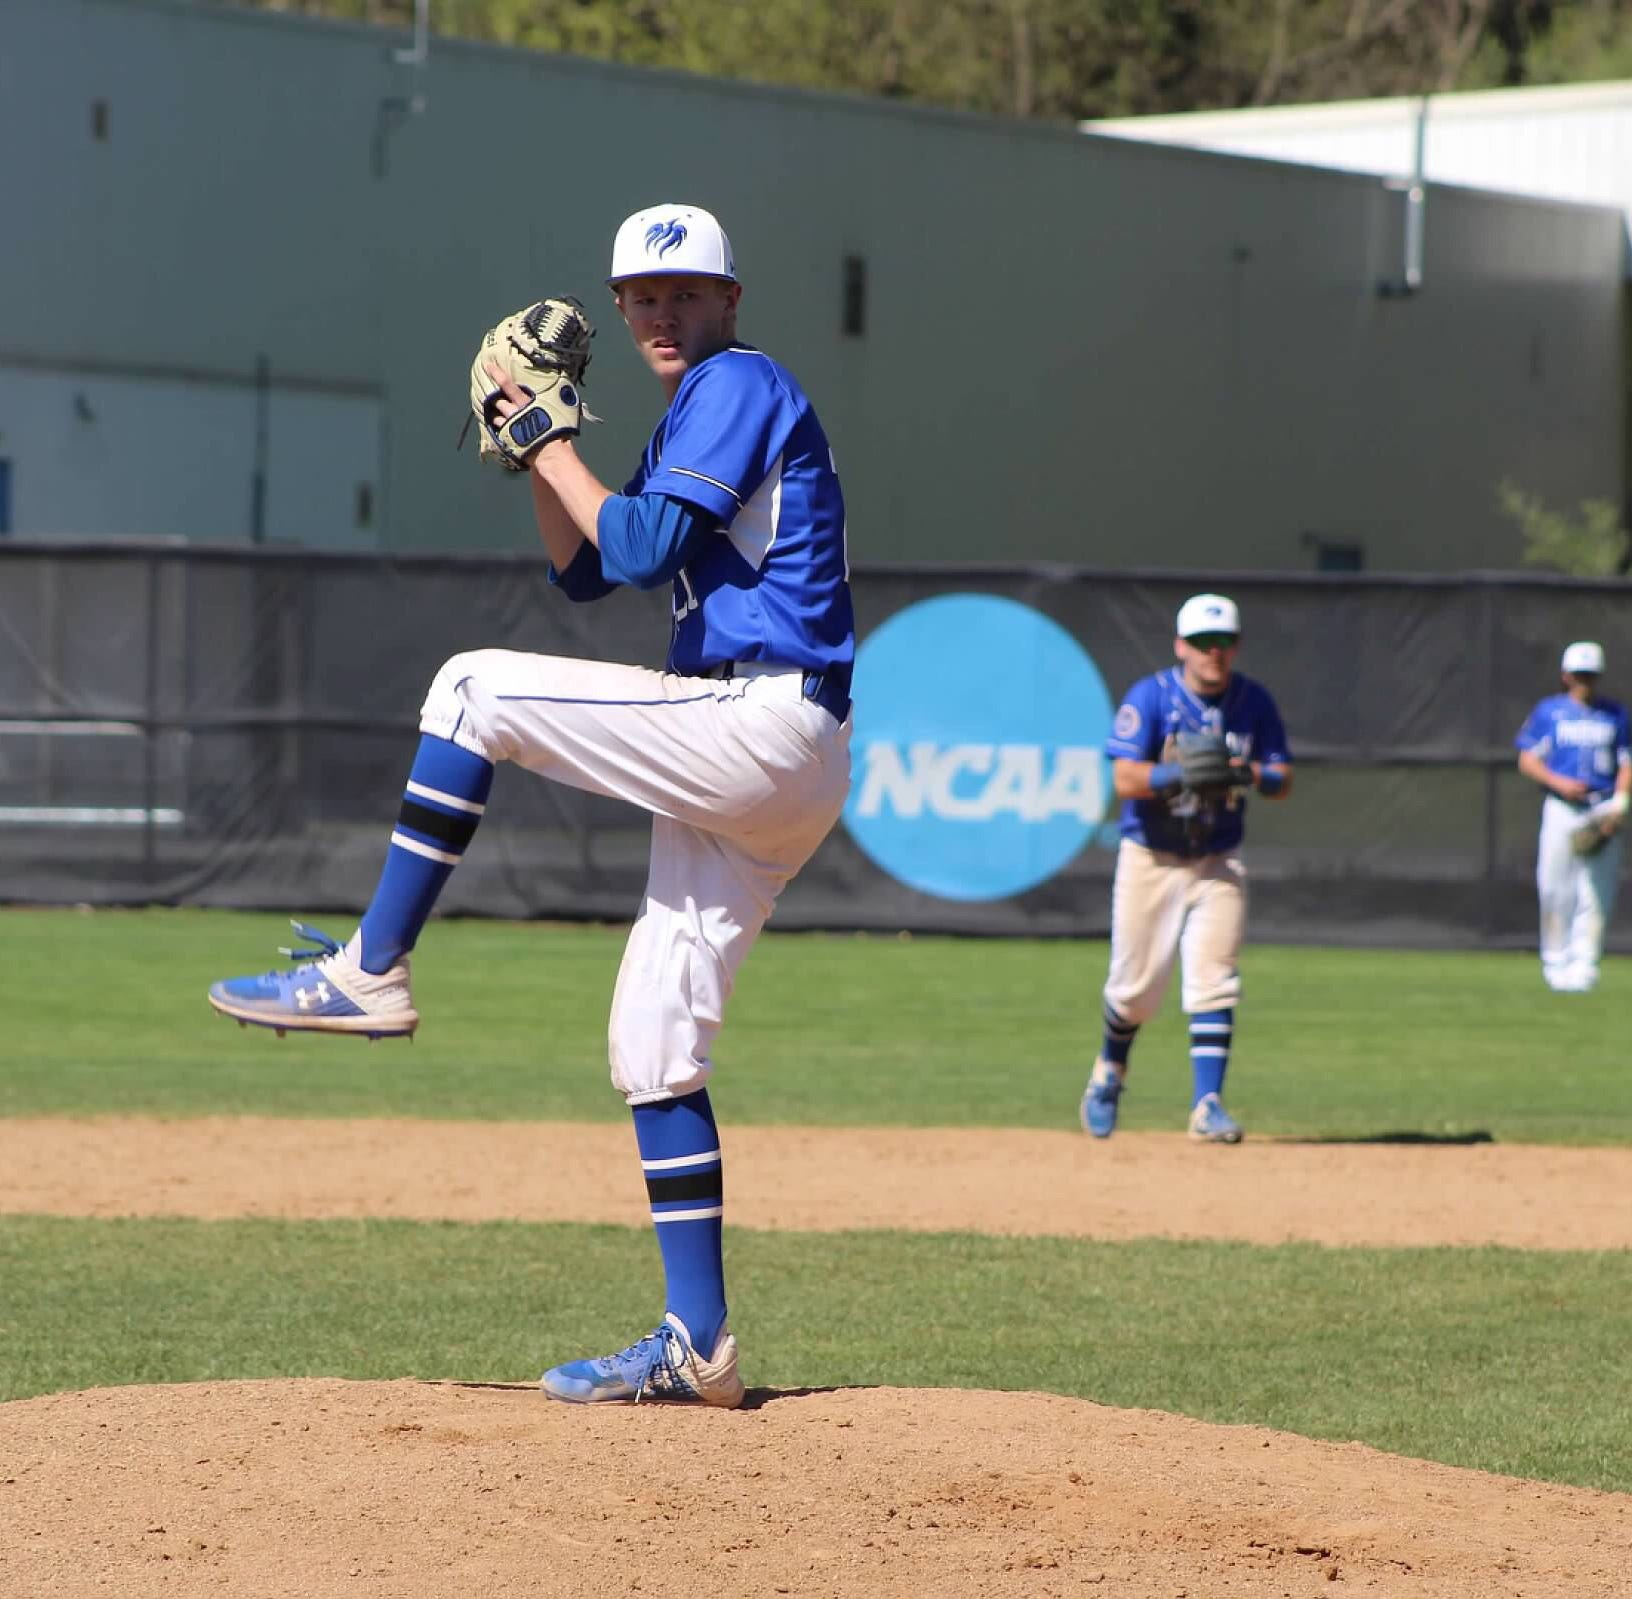 Wilson College baseball makes playoffs in inaugural season